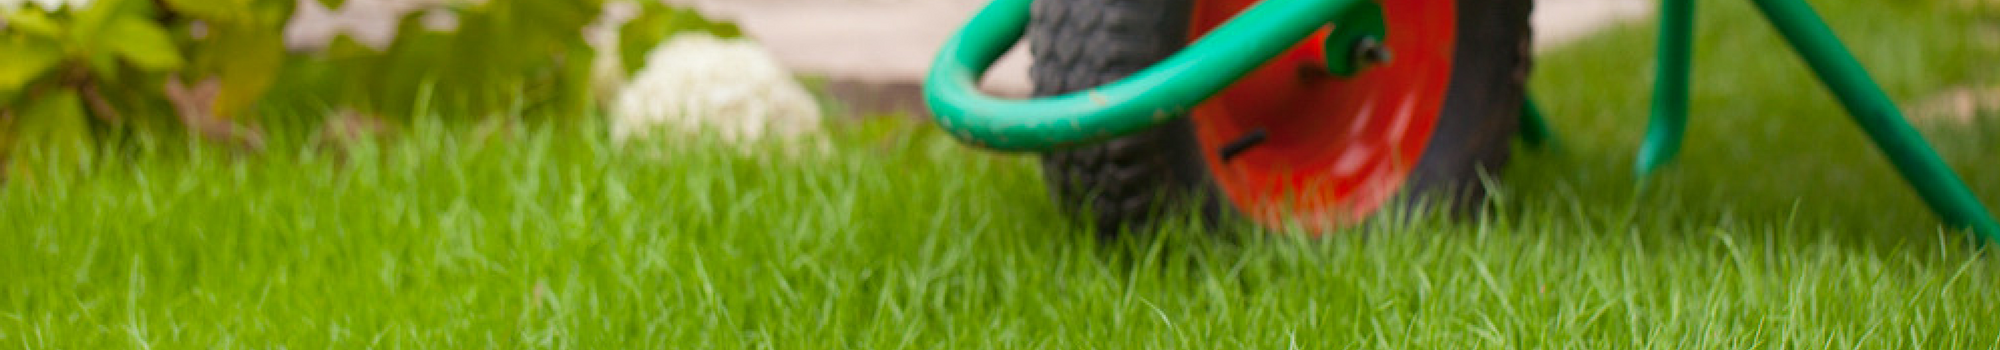 Ottawa |  Lawn Technicians Needed! - Featured Image